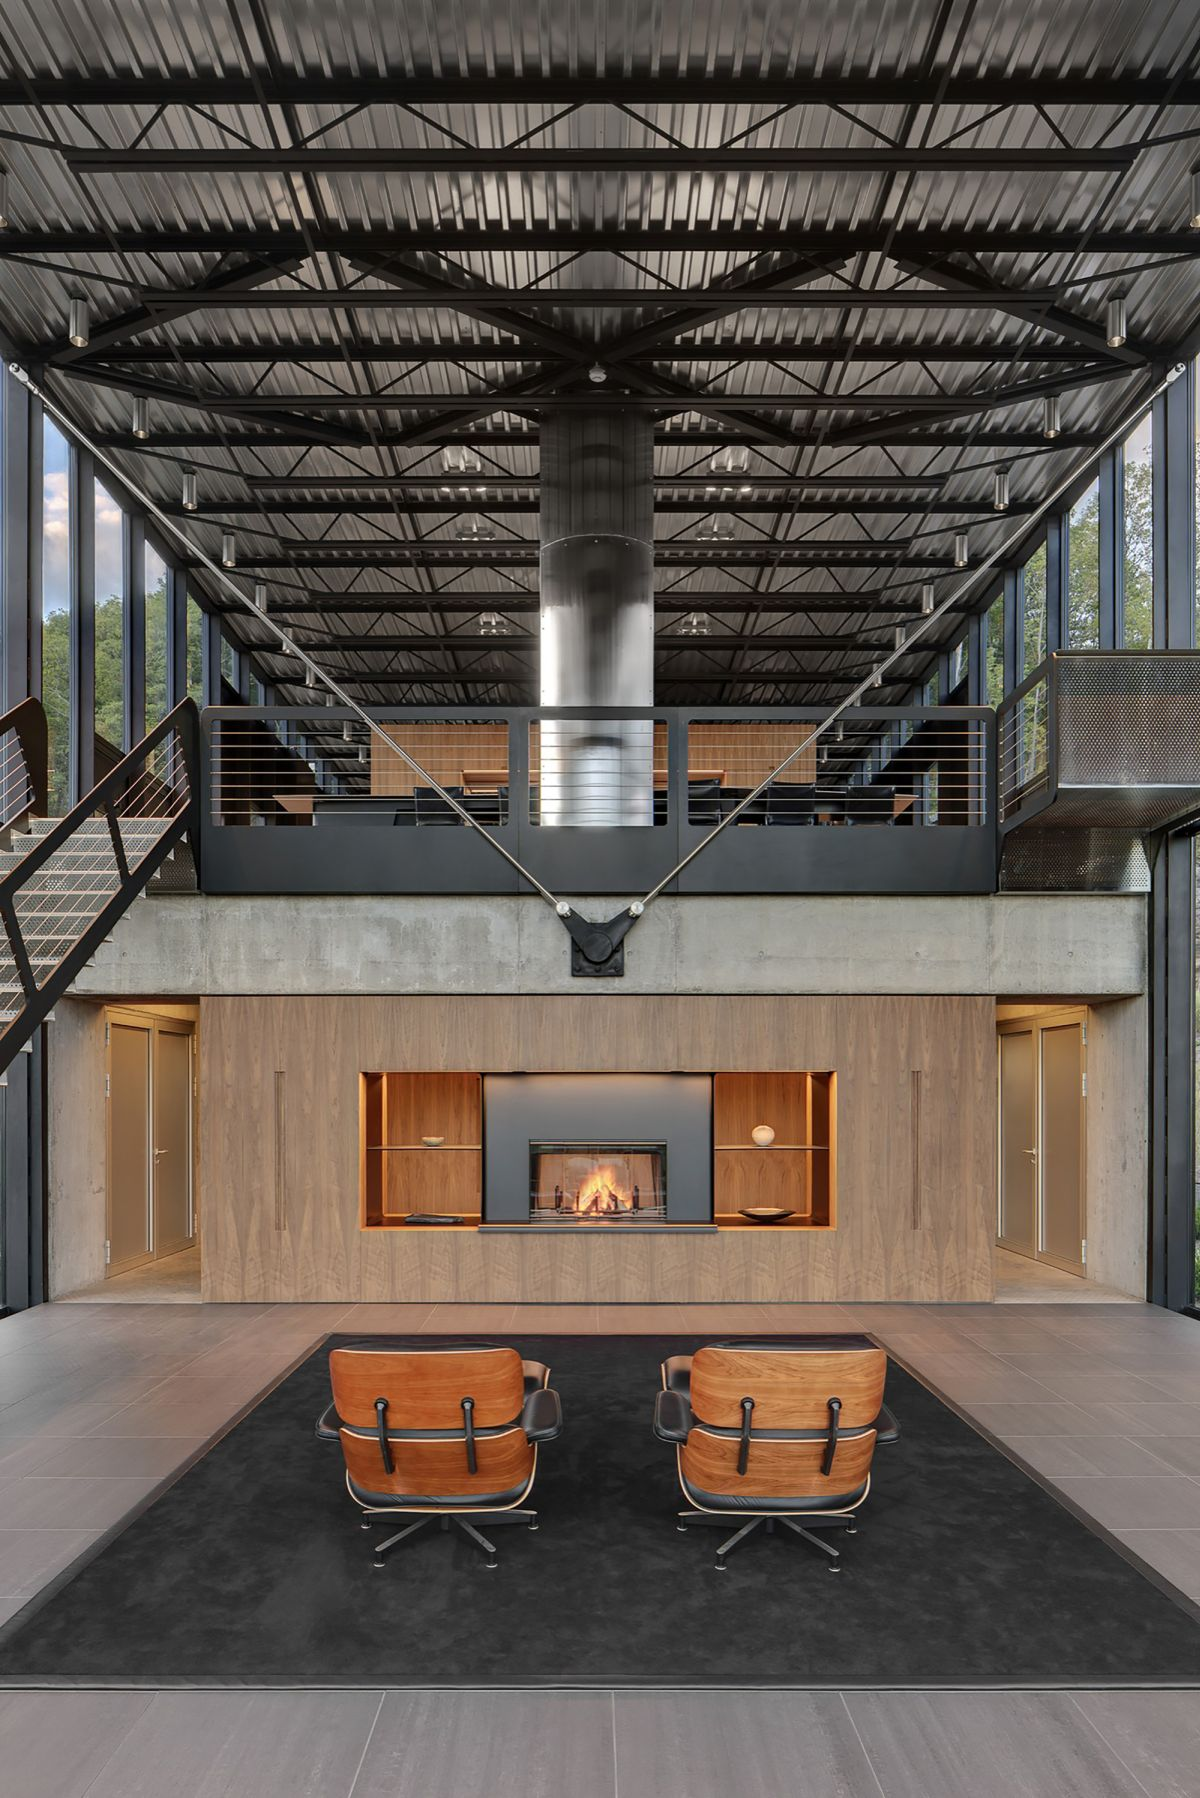 Two Eames Lounge chairs faced on fireplace